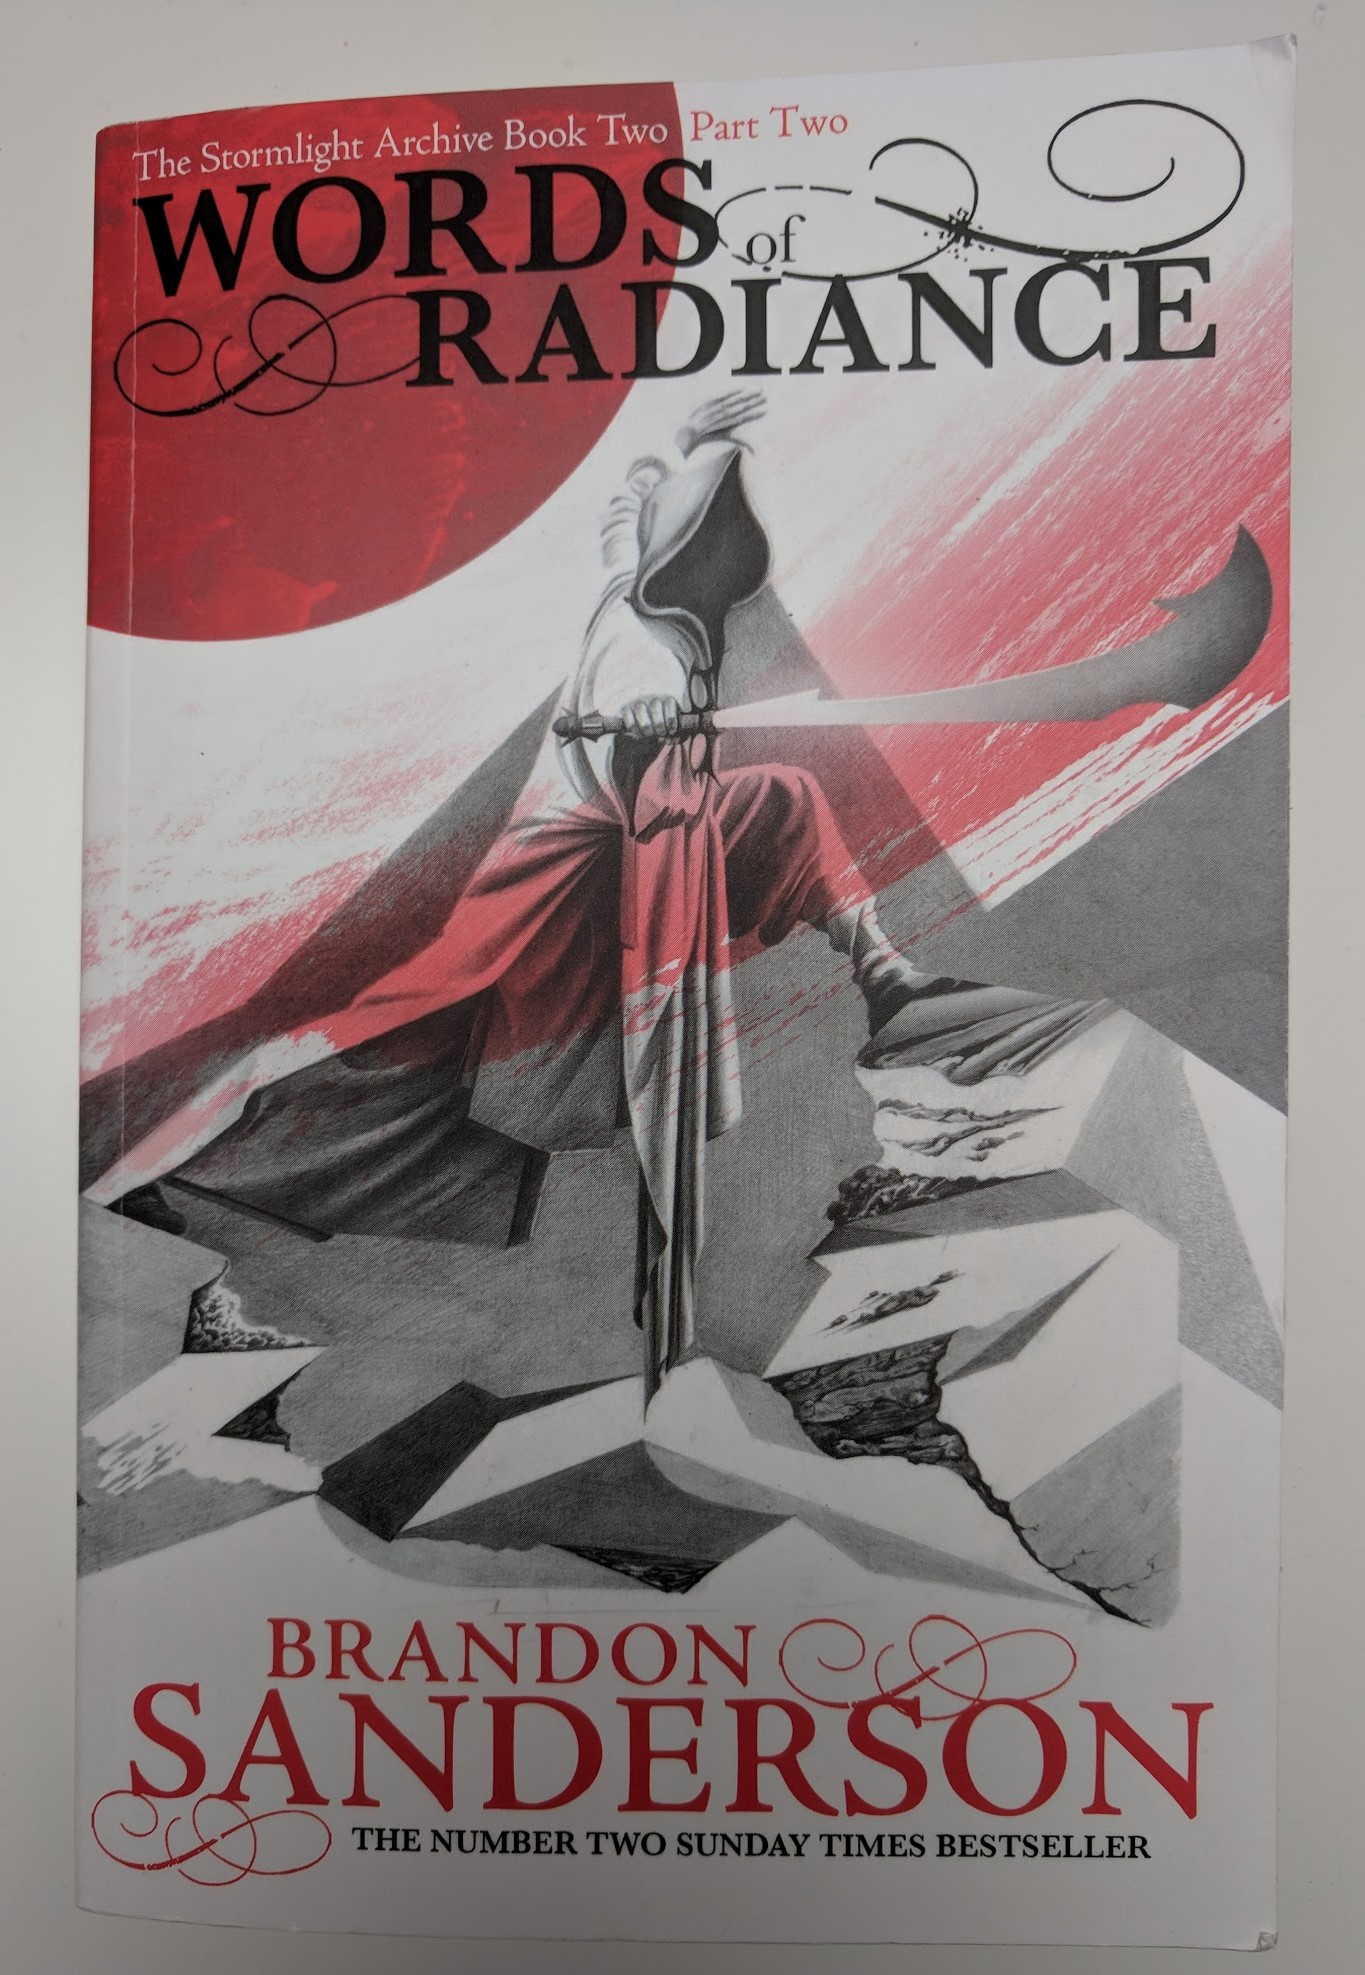 Words of Radiance (part 2)